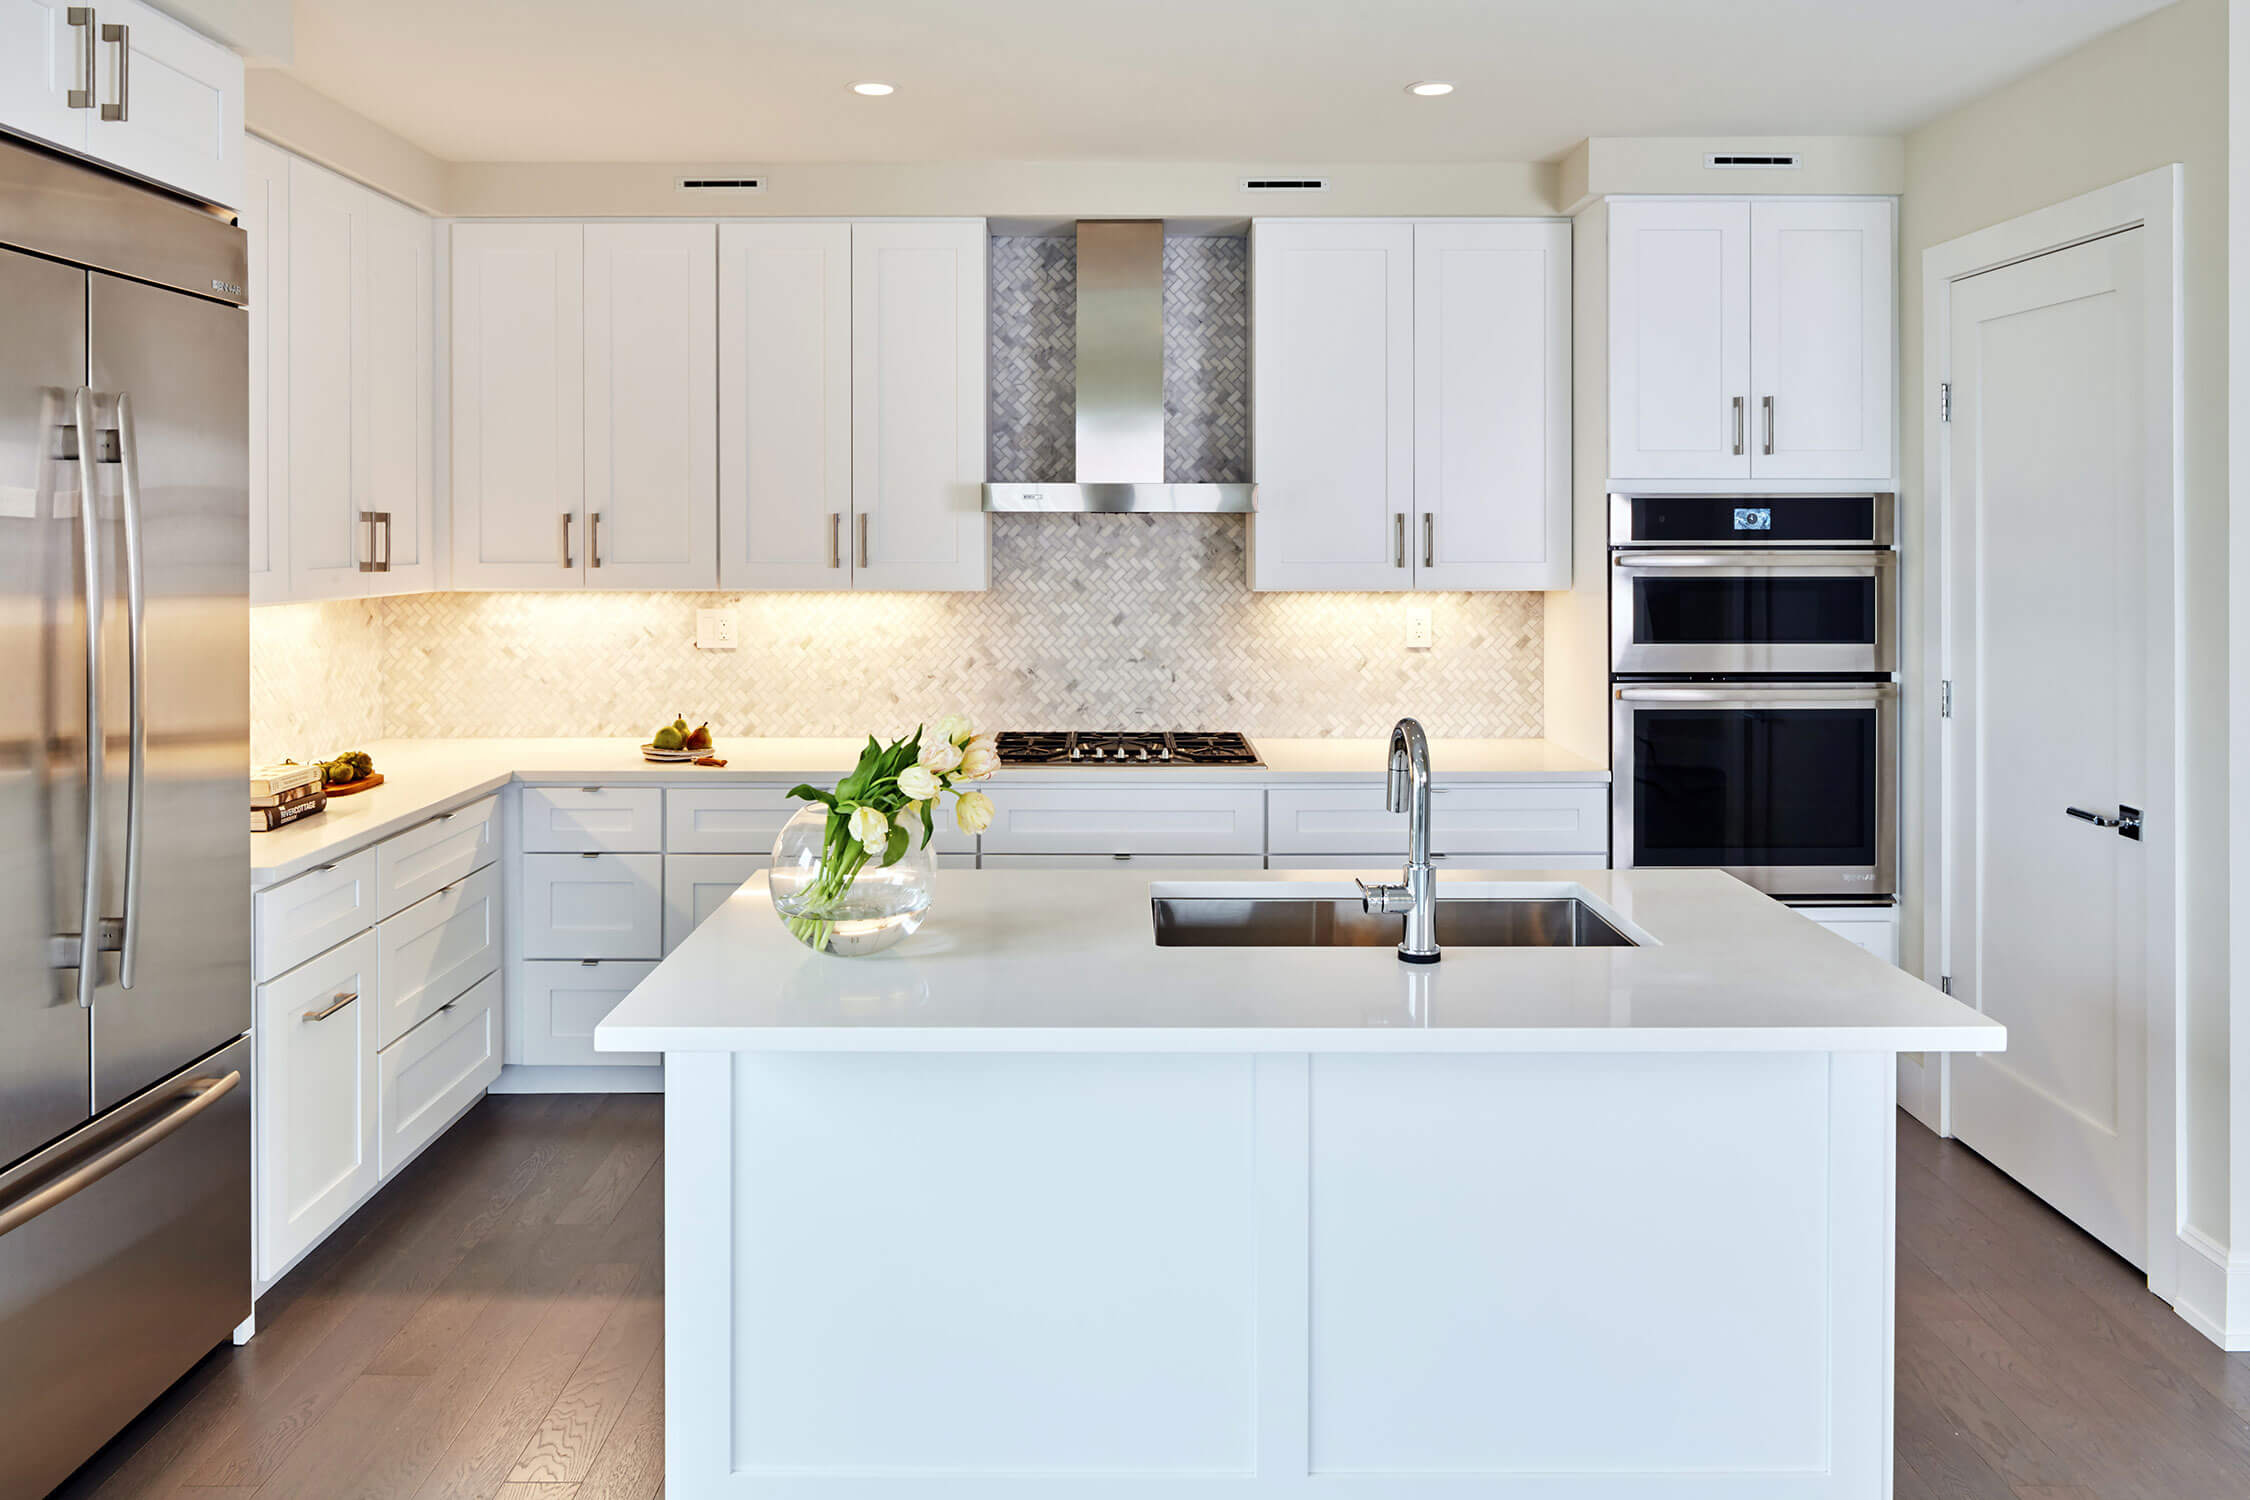 Modern kitchen with a fridge on the right, and a white island with a sink and flowers on it.